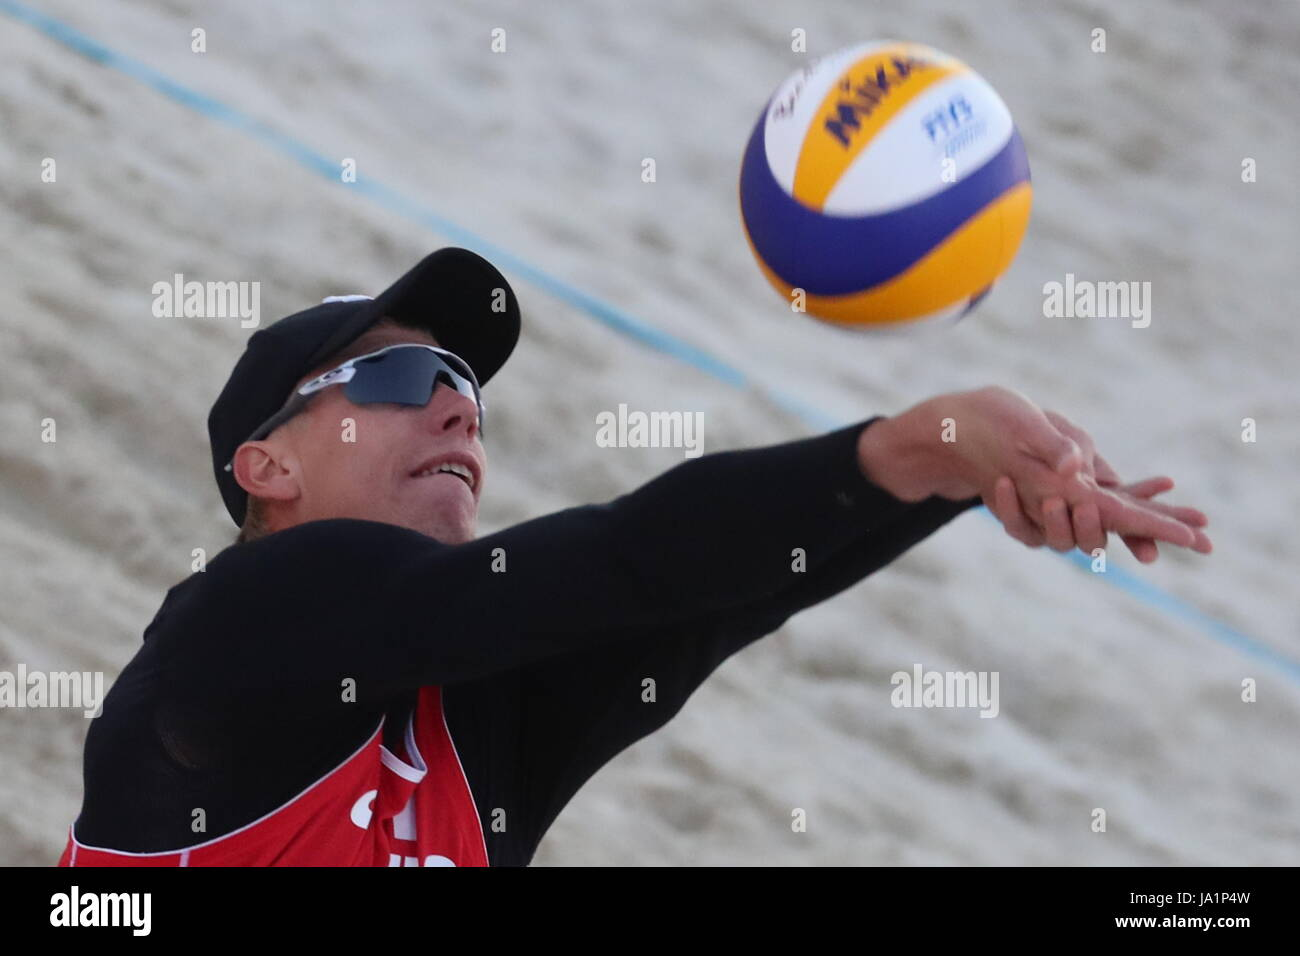 MOSCOW, RUSSIA – JUNE 4, 2017: Nikolai Lyamin of Russia in action during the final match against US Phil Dalhausser - Stock Image